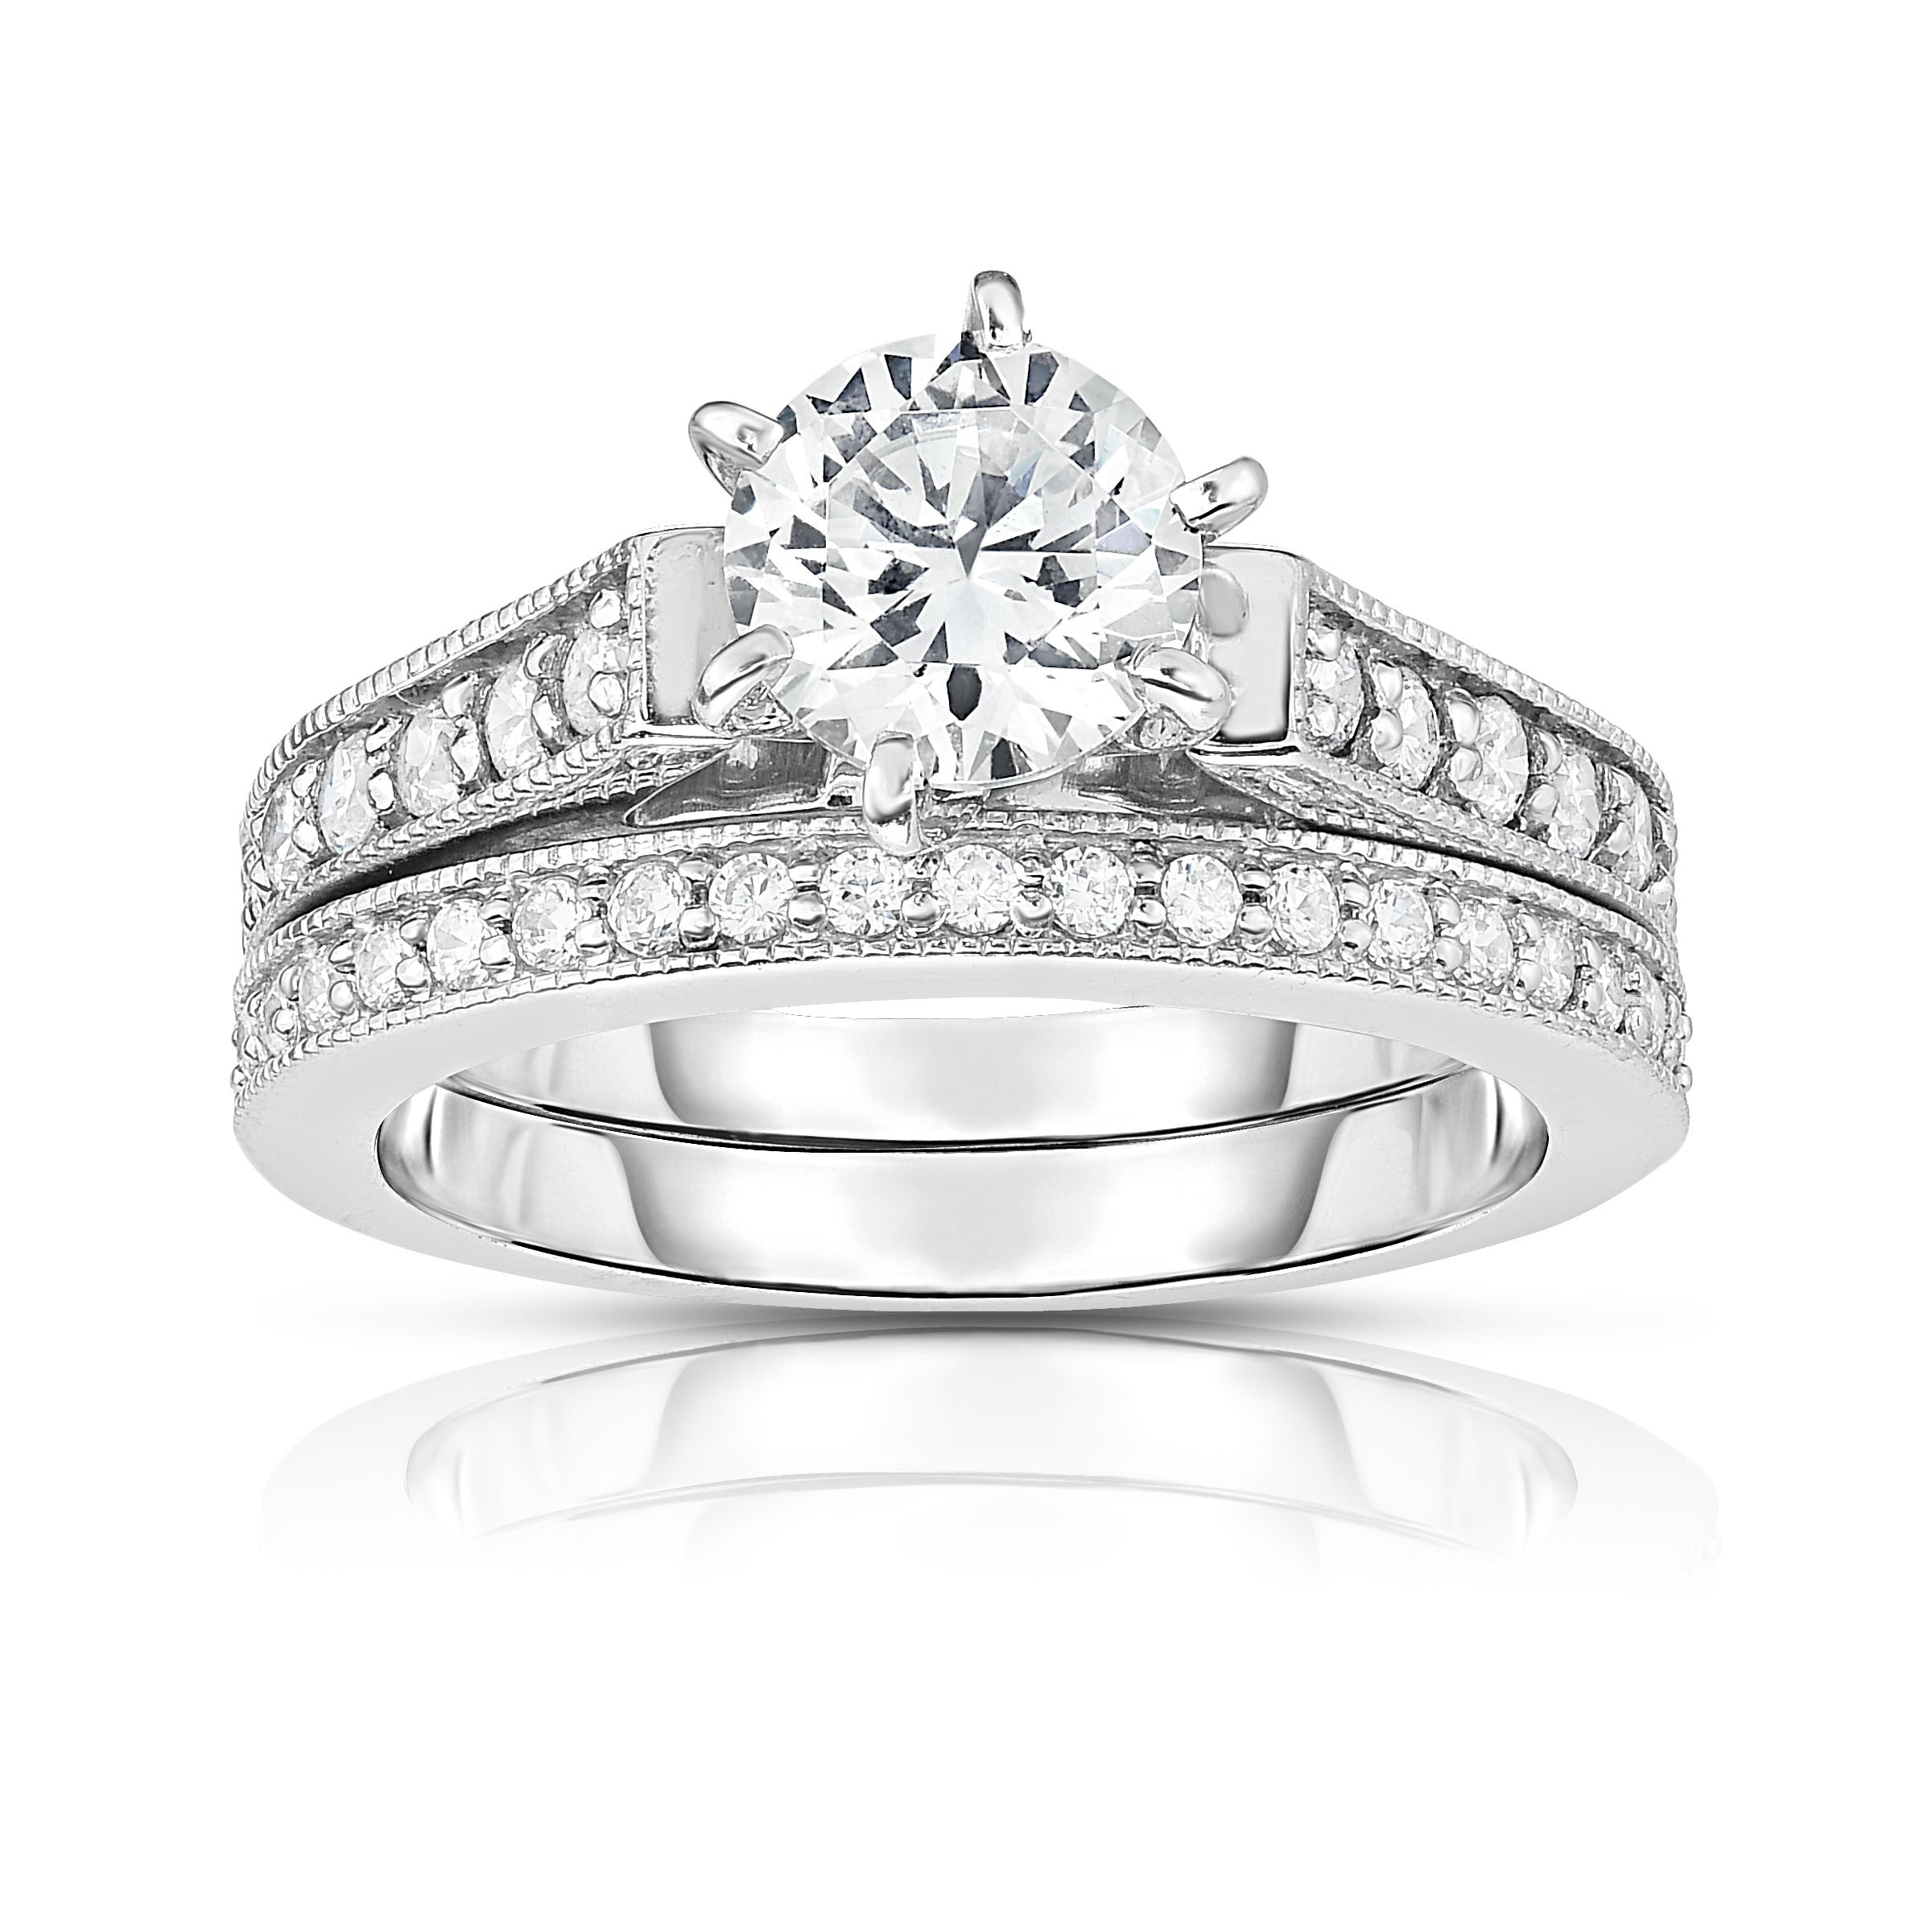 scout prong ring the ygold cguibara engagement rings products